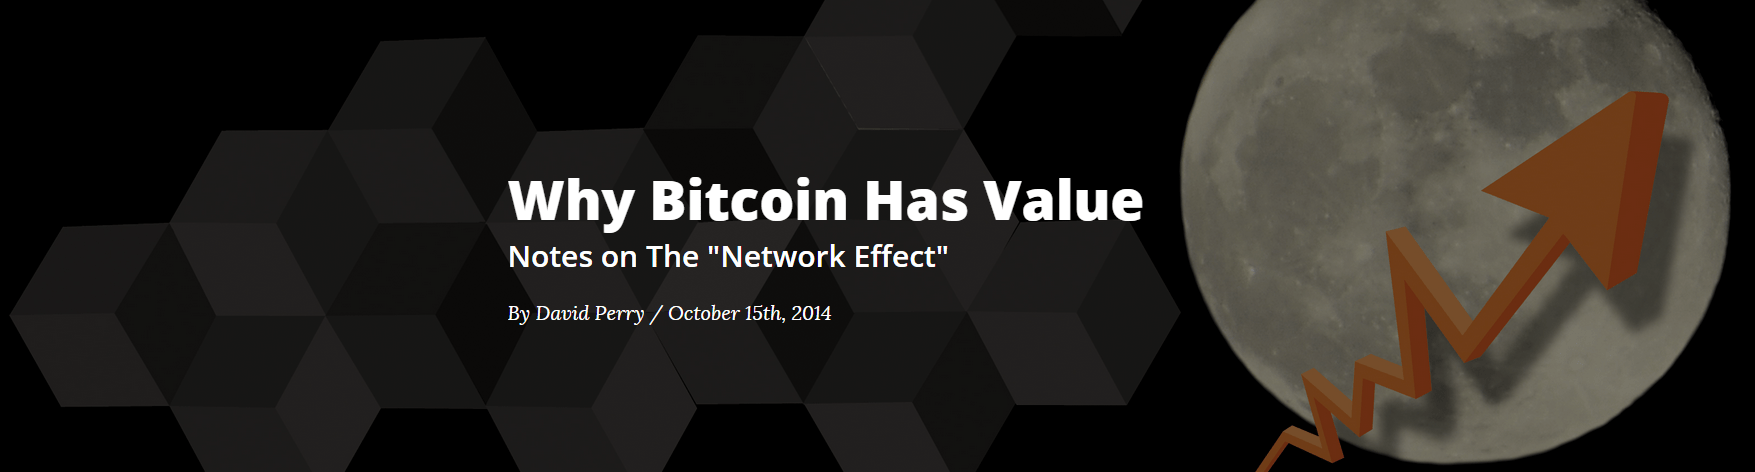 2015-01-24 00-22-48 yBitcoin.com   Why Bitcoin Has Value  Notes on The  Network Effect  - Google Chrome